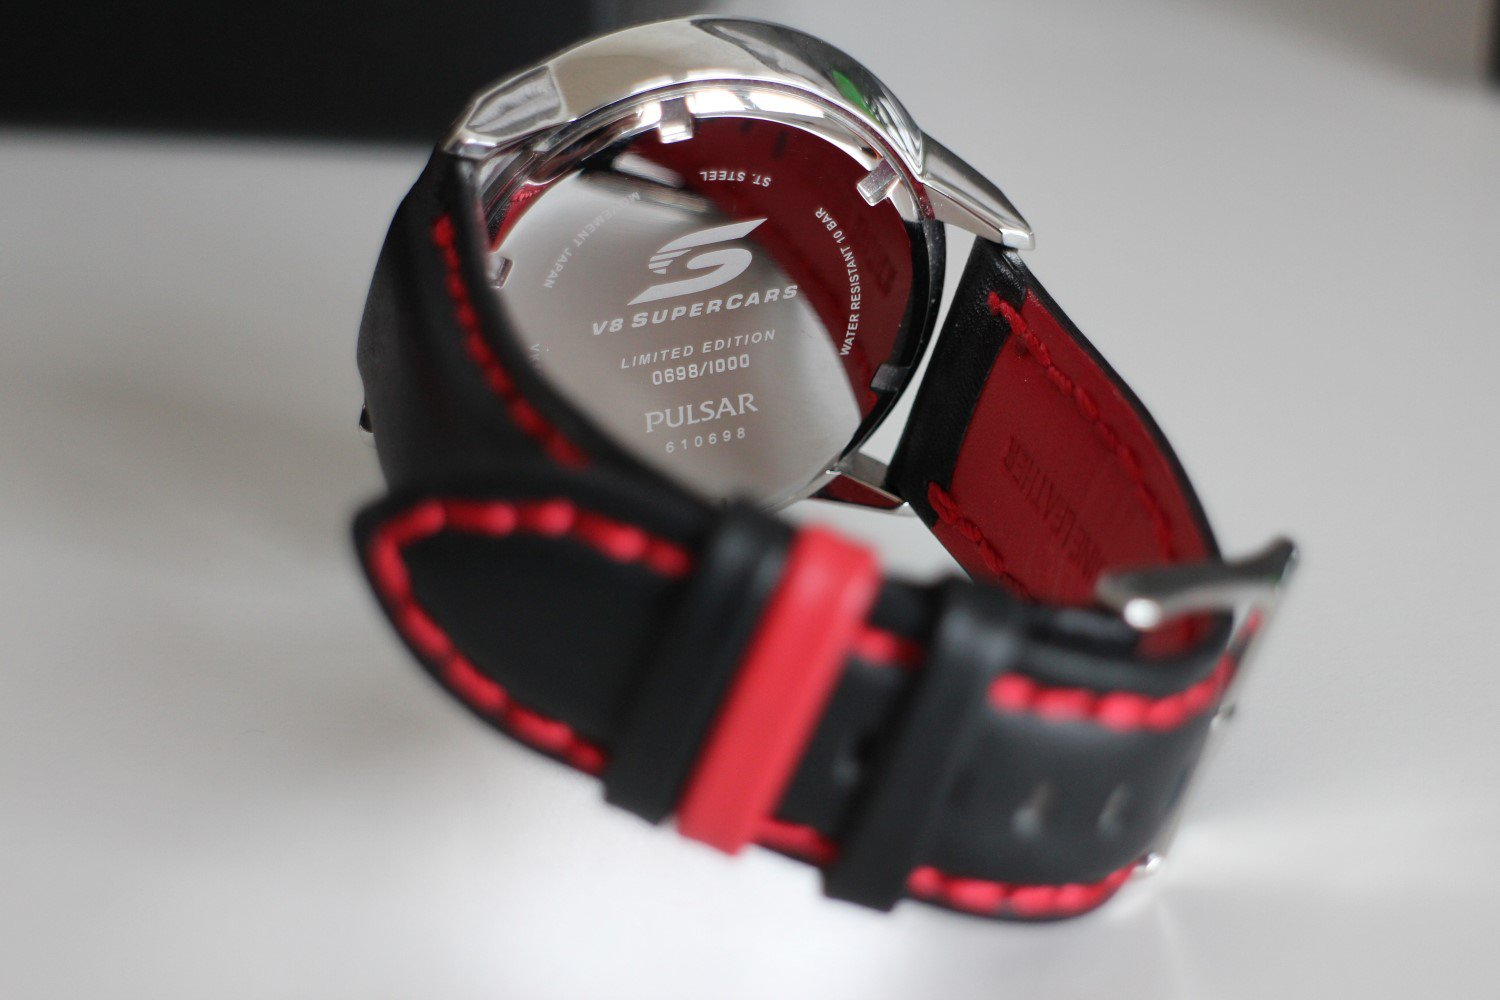 pulsar v8 limited edition watch strap